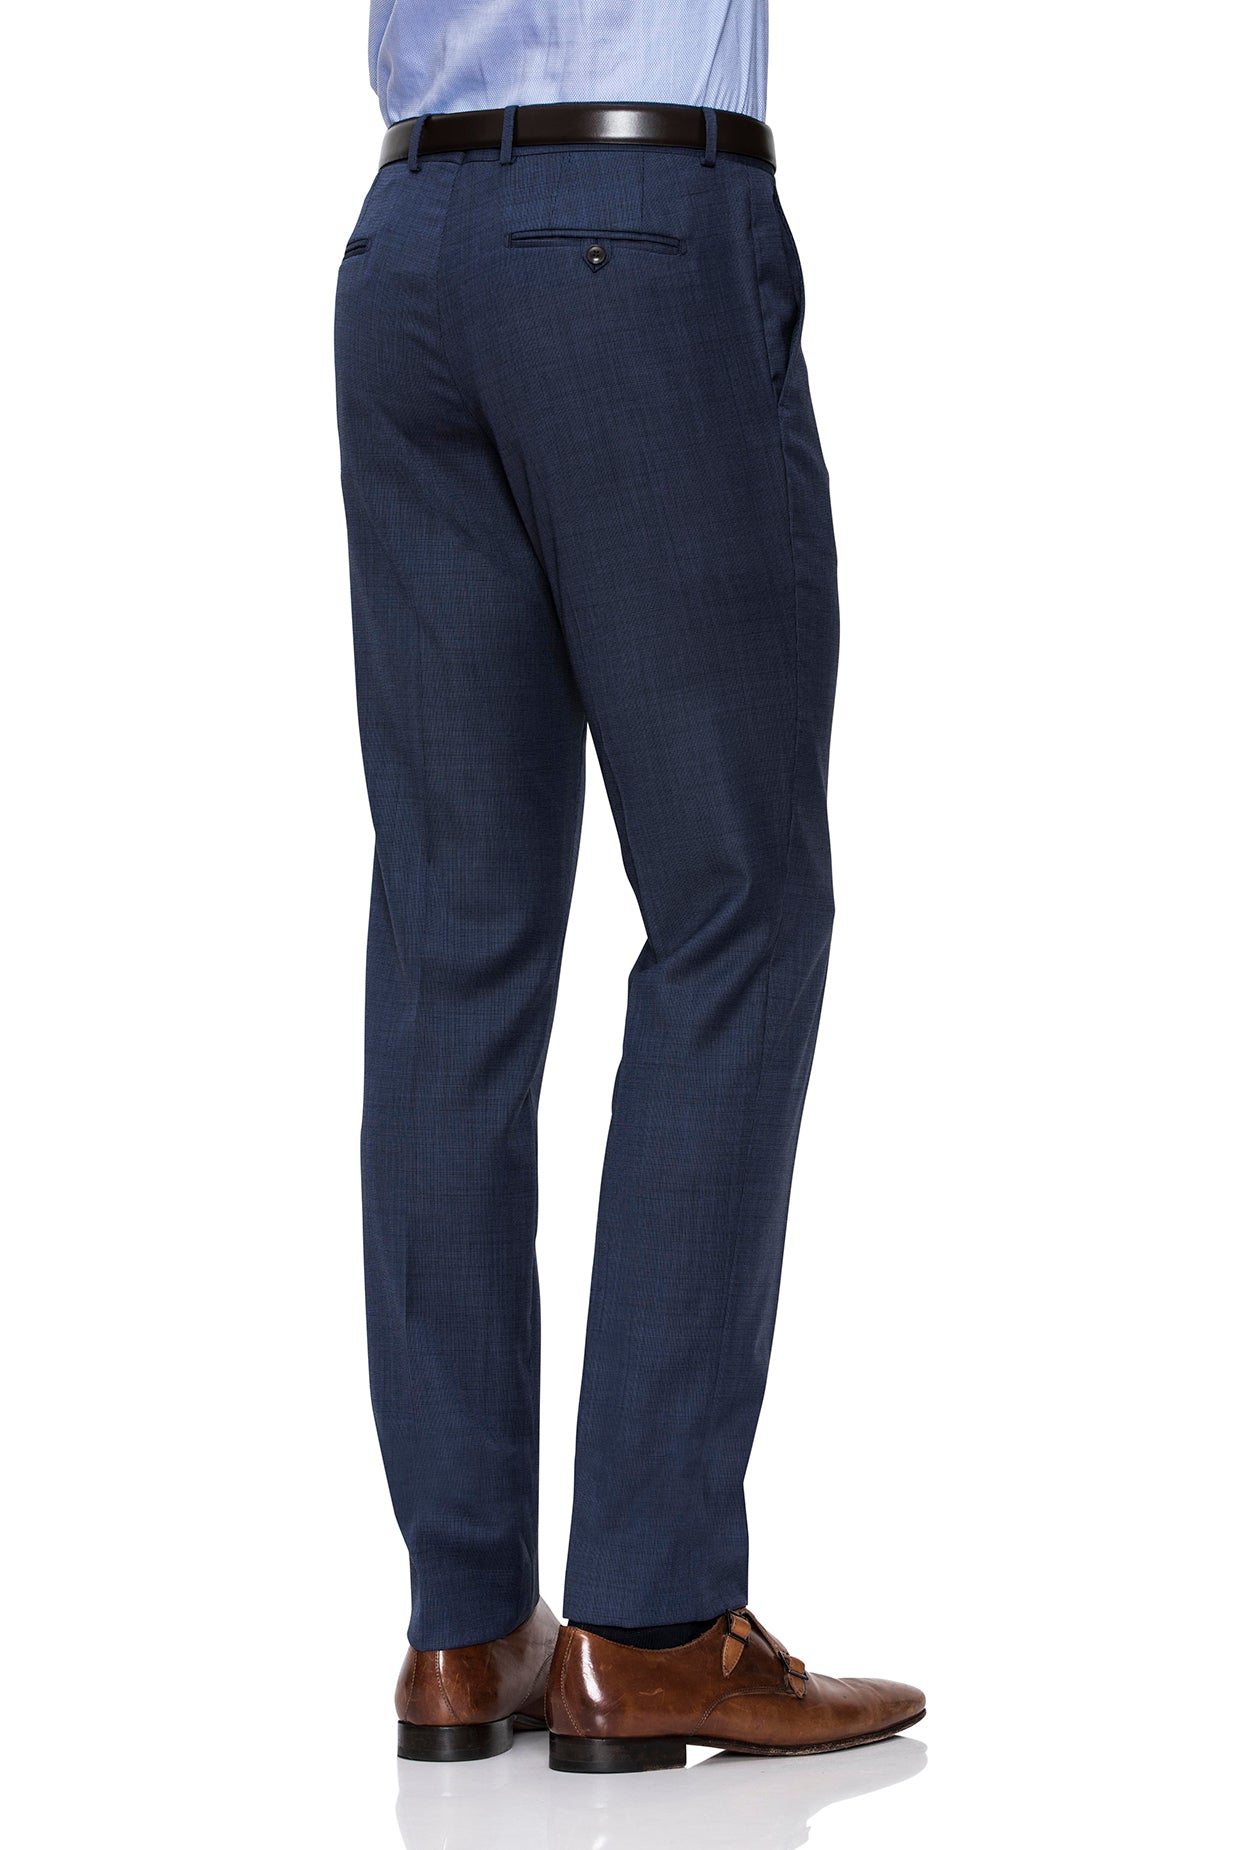 Razor Trouser in Micro Check Blue